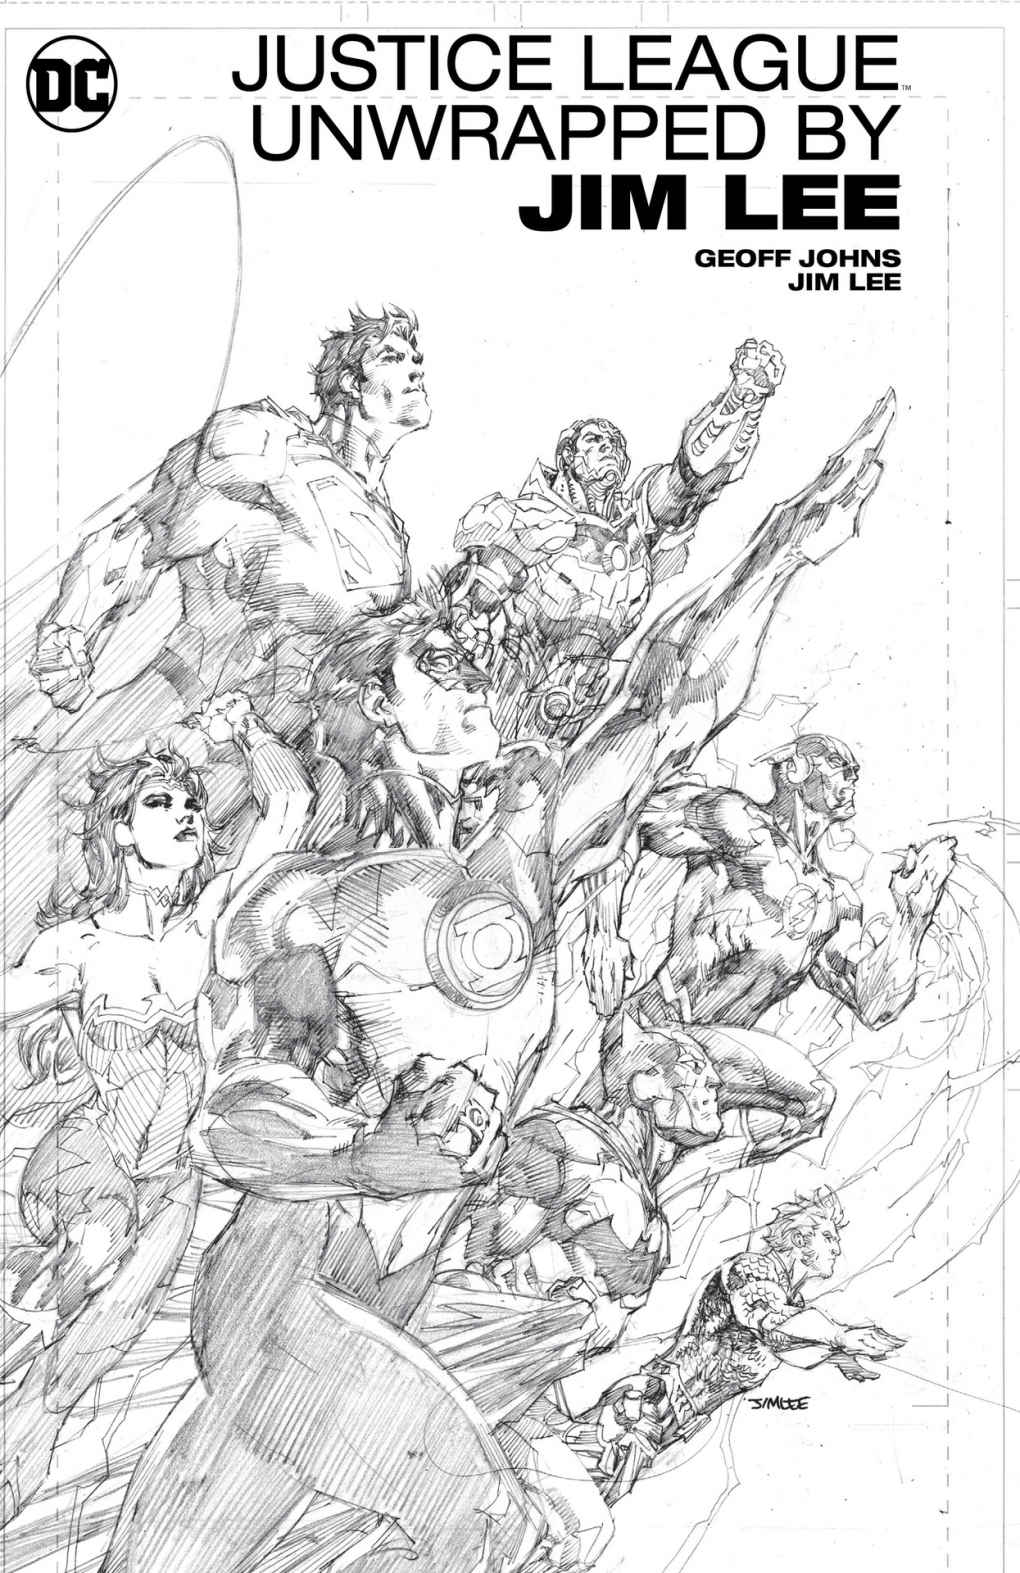 Justice league unwrapped by Jim Lee 1 - Justice League Unwrapped